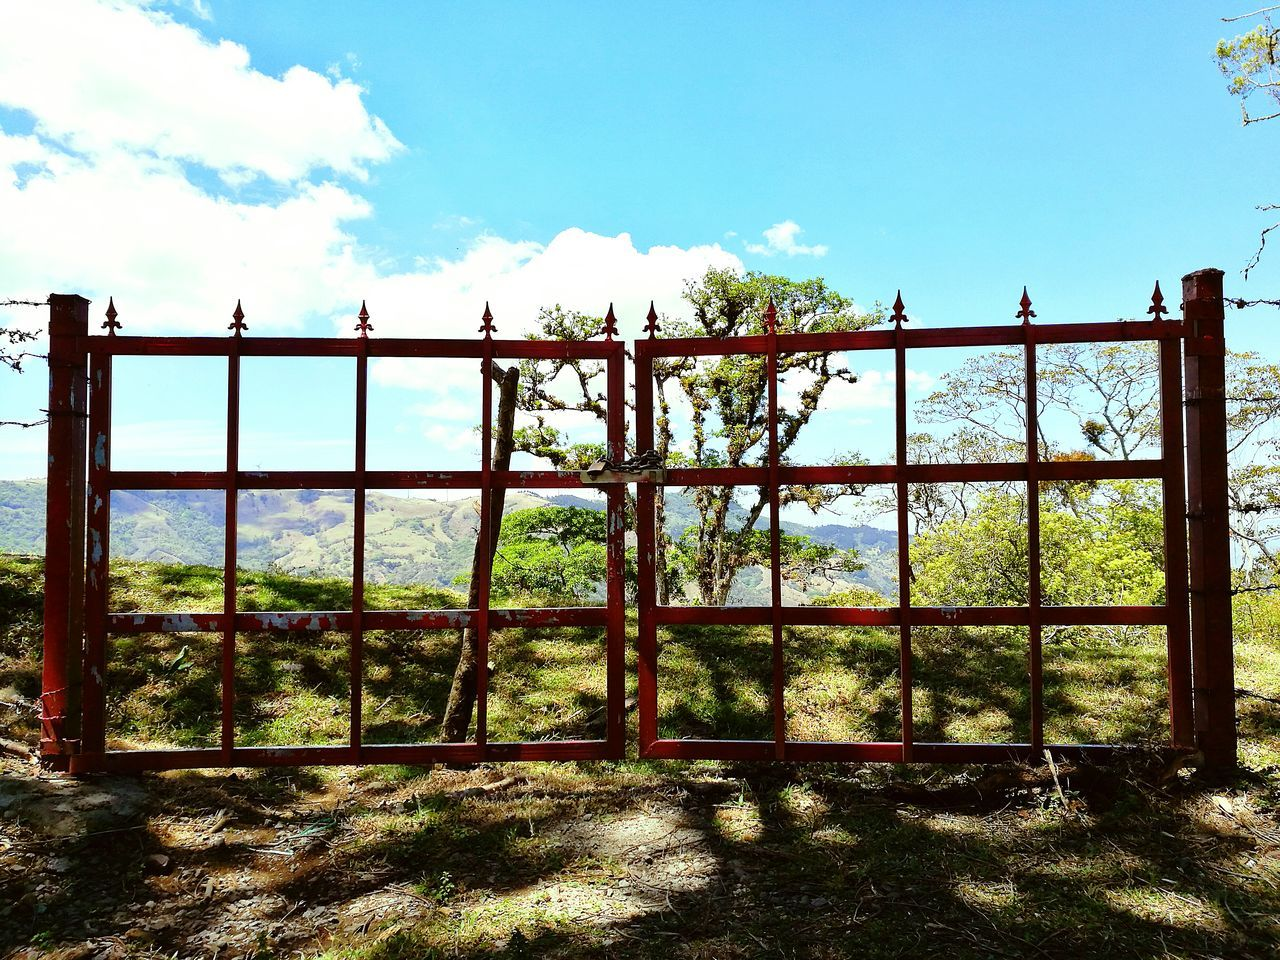 Gate Red Gate Outdoors Nature Sky No People Day Sunlight Sunlight ☀ Tree in Bebedero Escazu San Jose, Costa Rica EyeEmNewHere